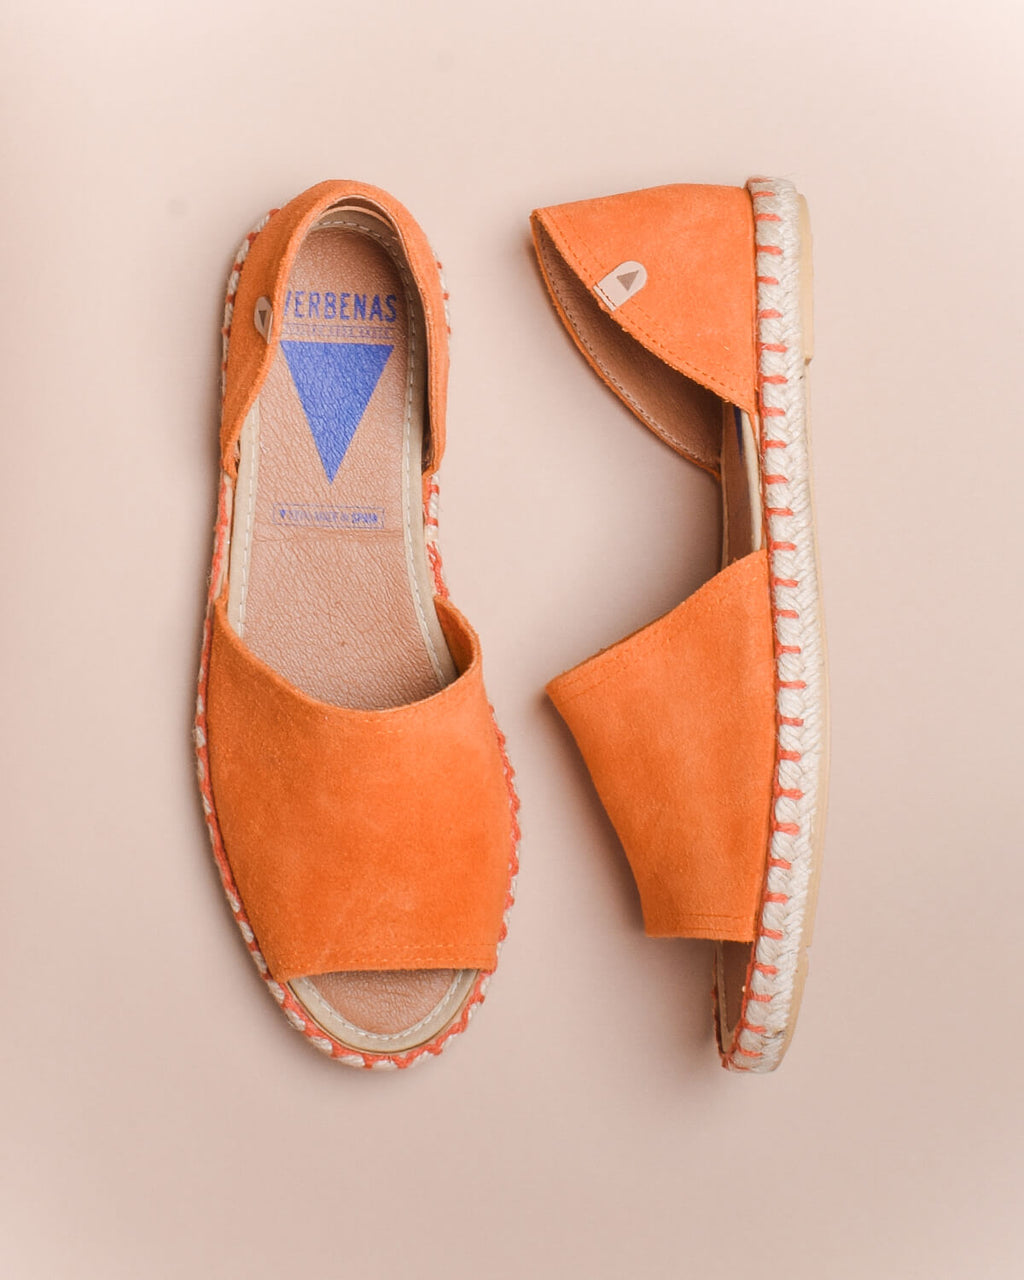 Carol Suede Open Toe d'Orsay Espadrilles - Orange - Verbenas USA